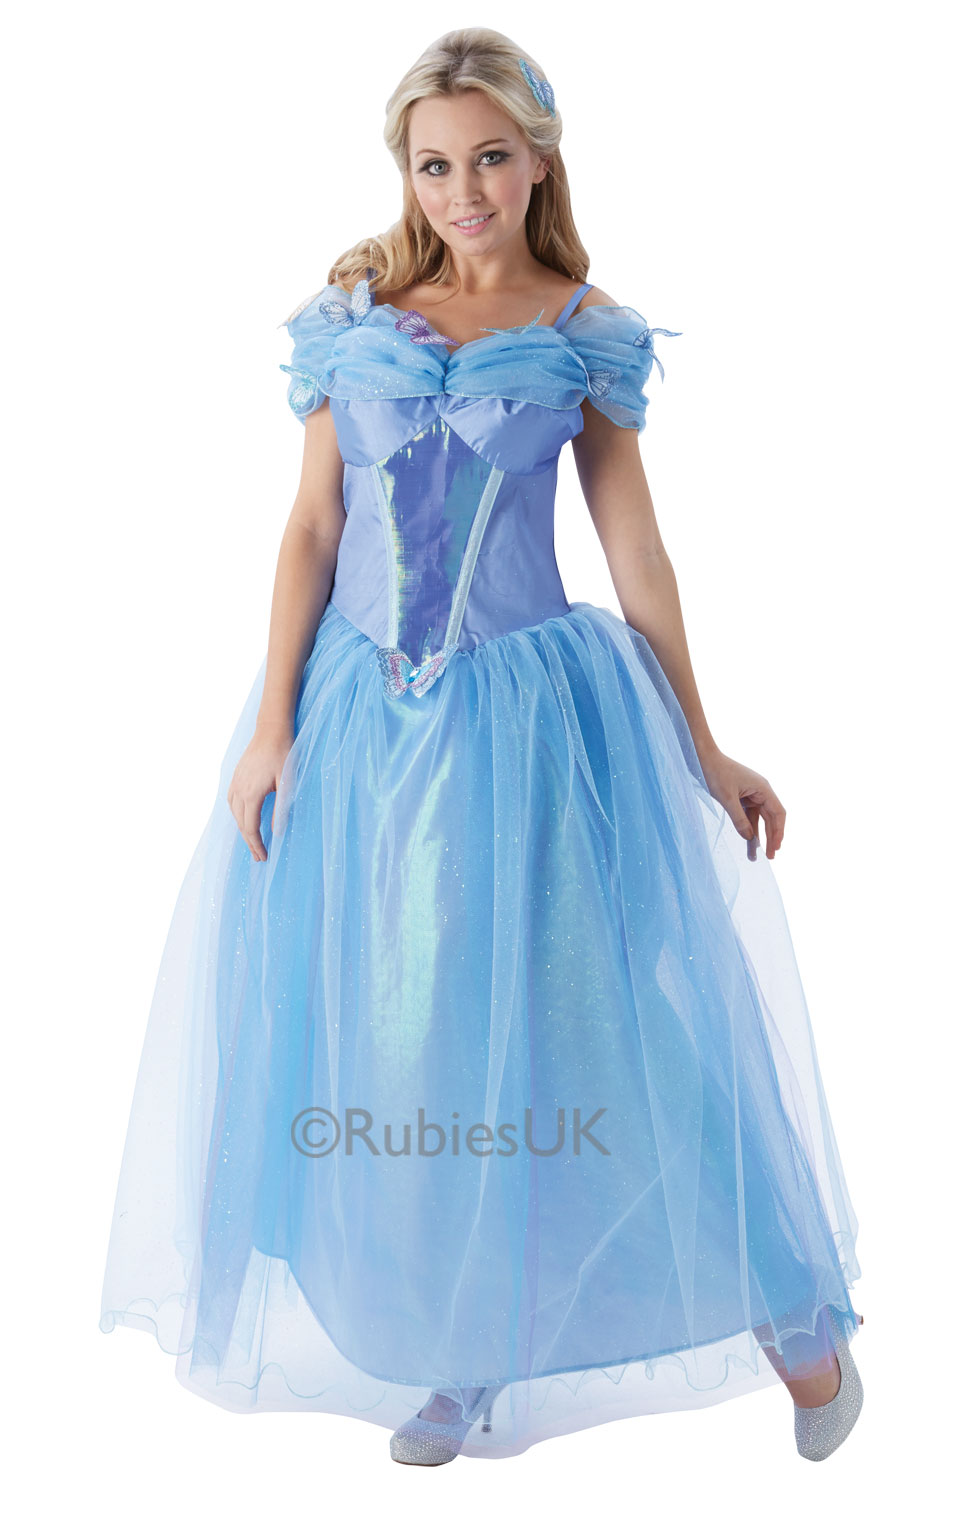 Excellent This My Little Pony Rainbow Dash Princess DressUp May Not Be Disney But Its Adorable And Is A Bargain! Reduced From &1632499 To Just &163799 You Can Reserve And Collect Your Disney Princess Dress For FREE From An Argos Store